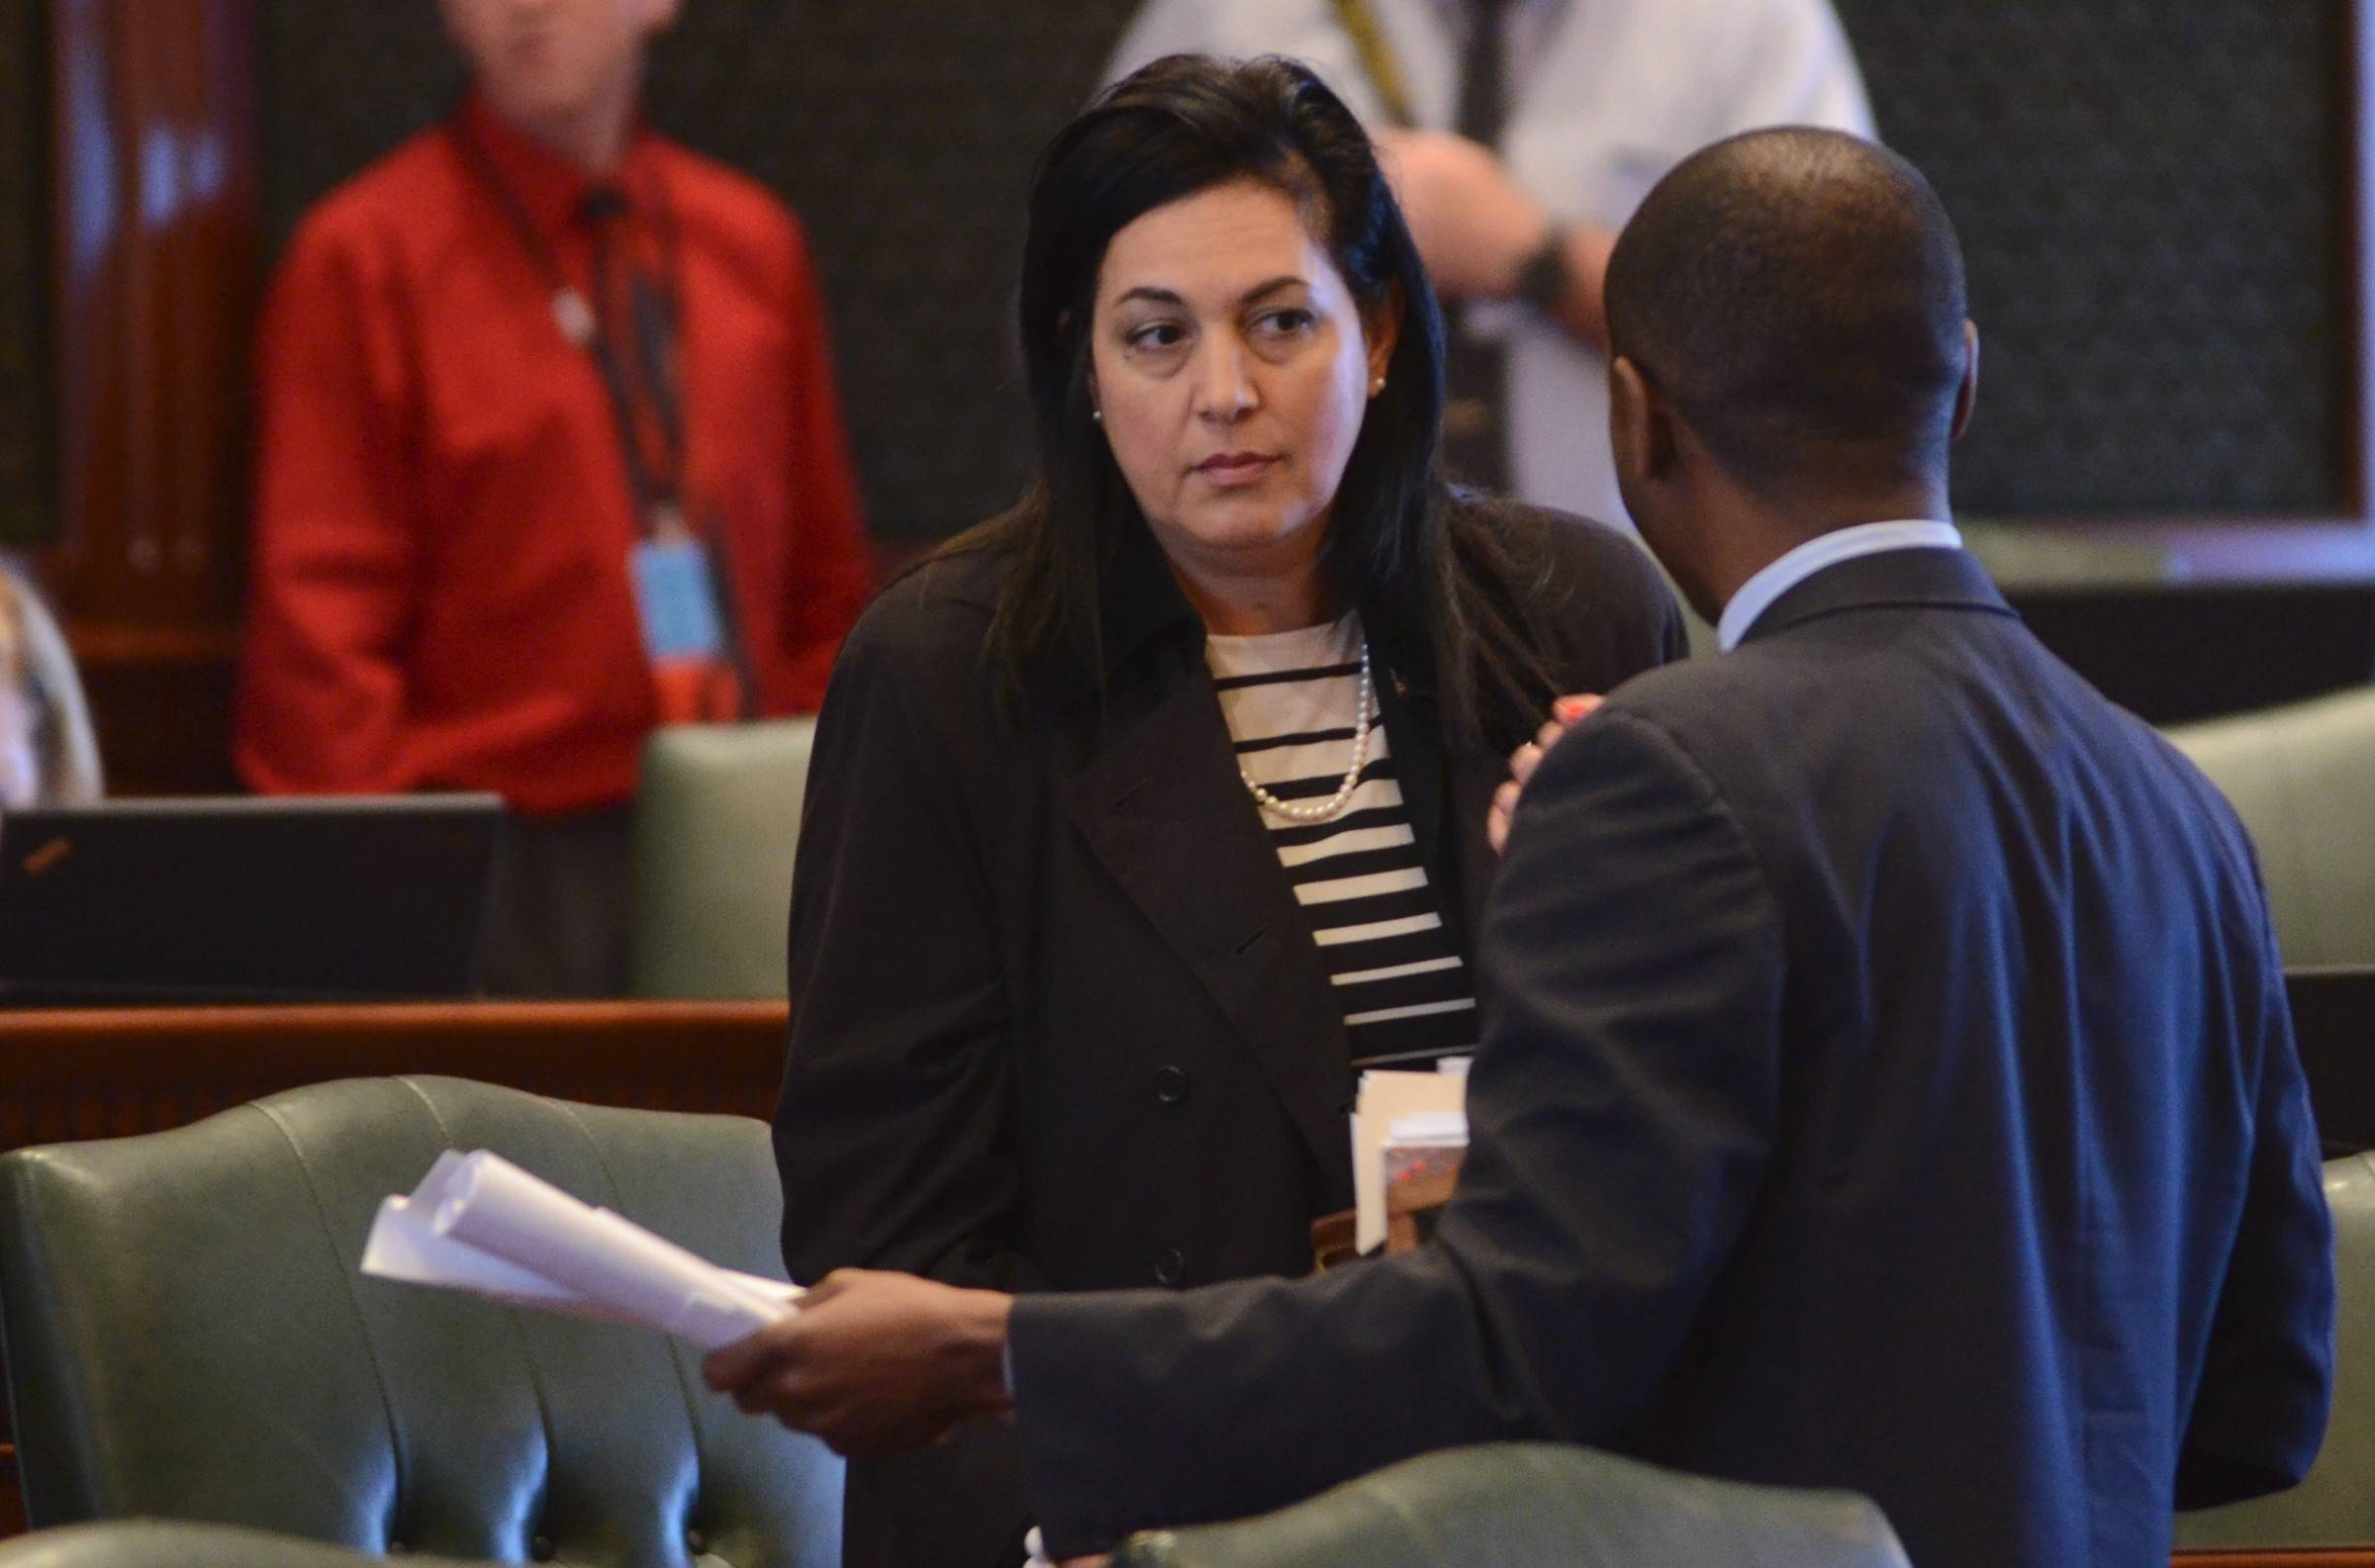 State Rep. Linda Chapa LaVia, an Aurora Democrat, won approval for a plan calling for hearings into the operations of the Illinois High School Association.